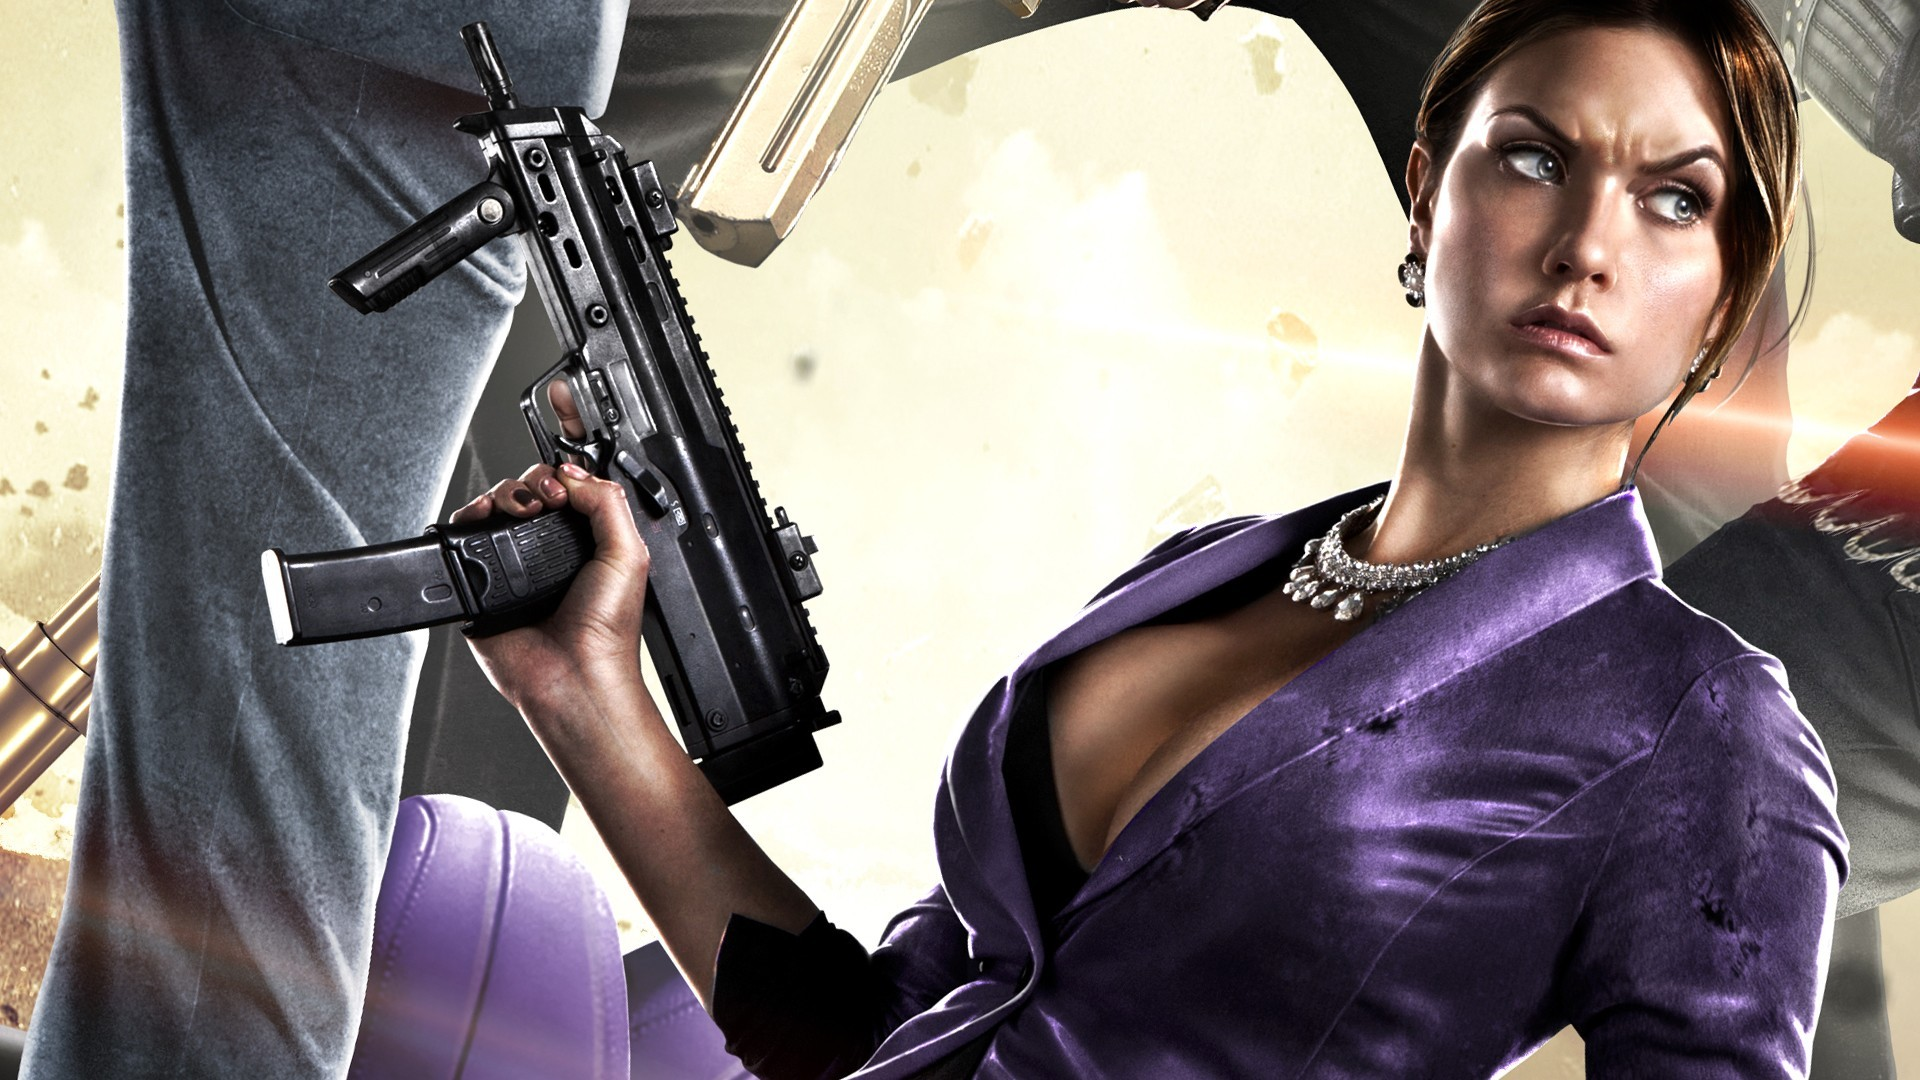 Wallpaper 10 Wallpaper From Saints Row Iv Gamepressurecom